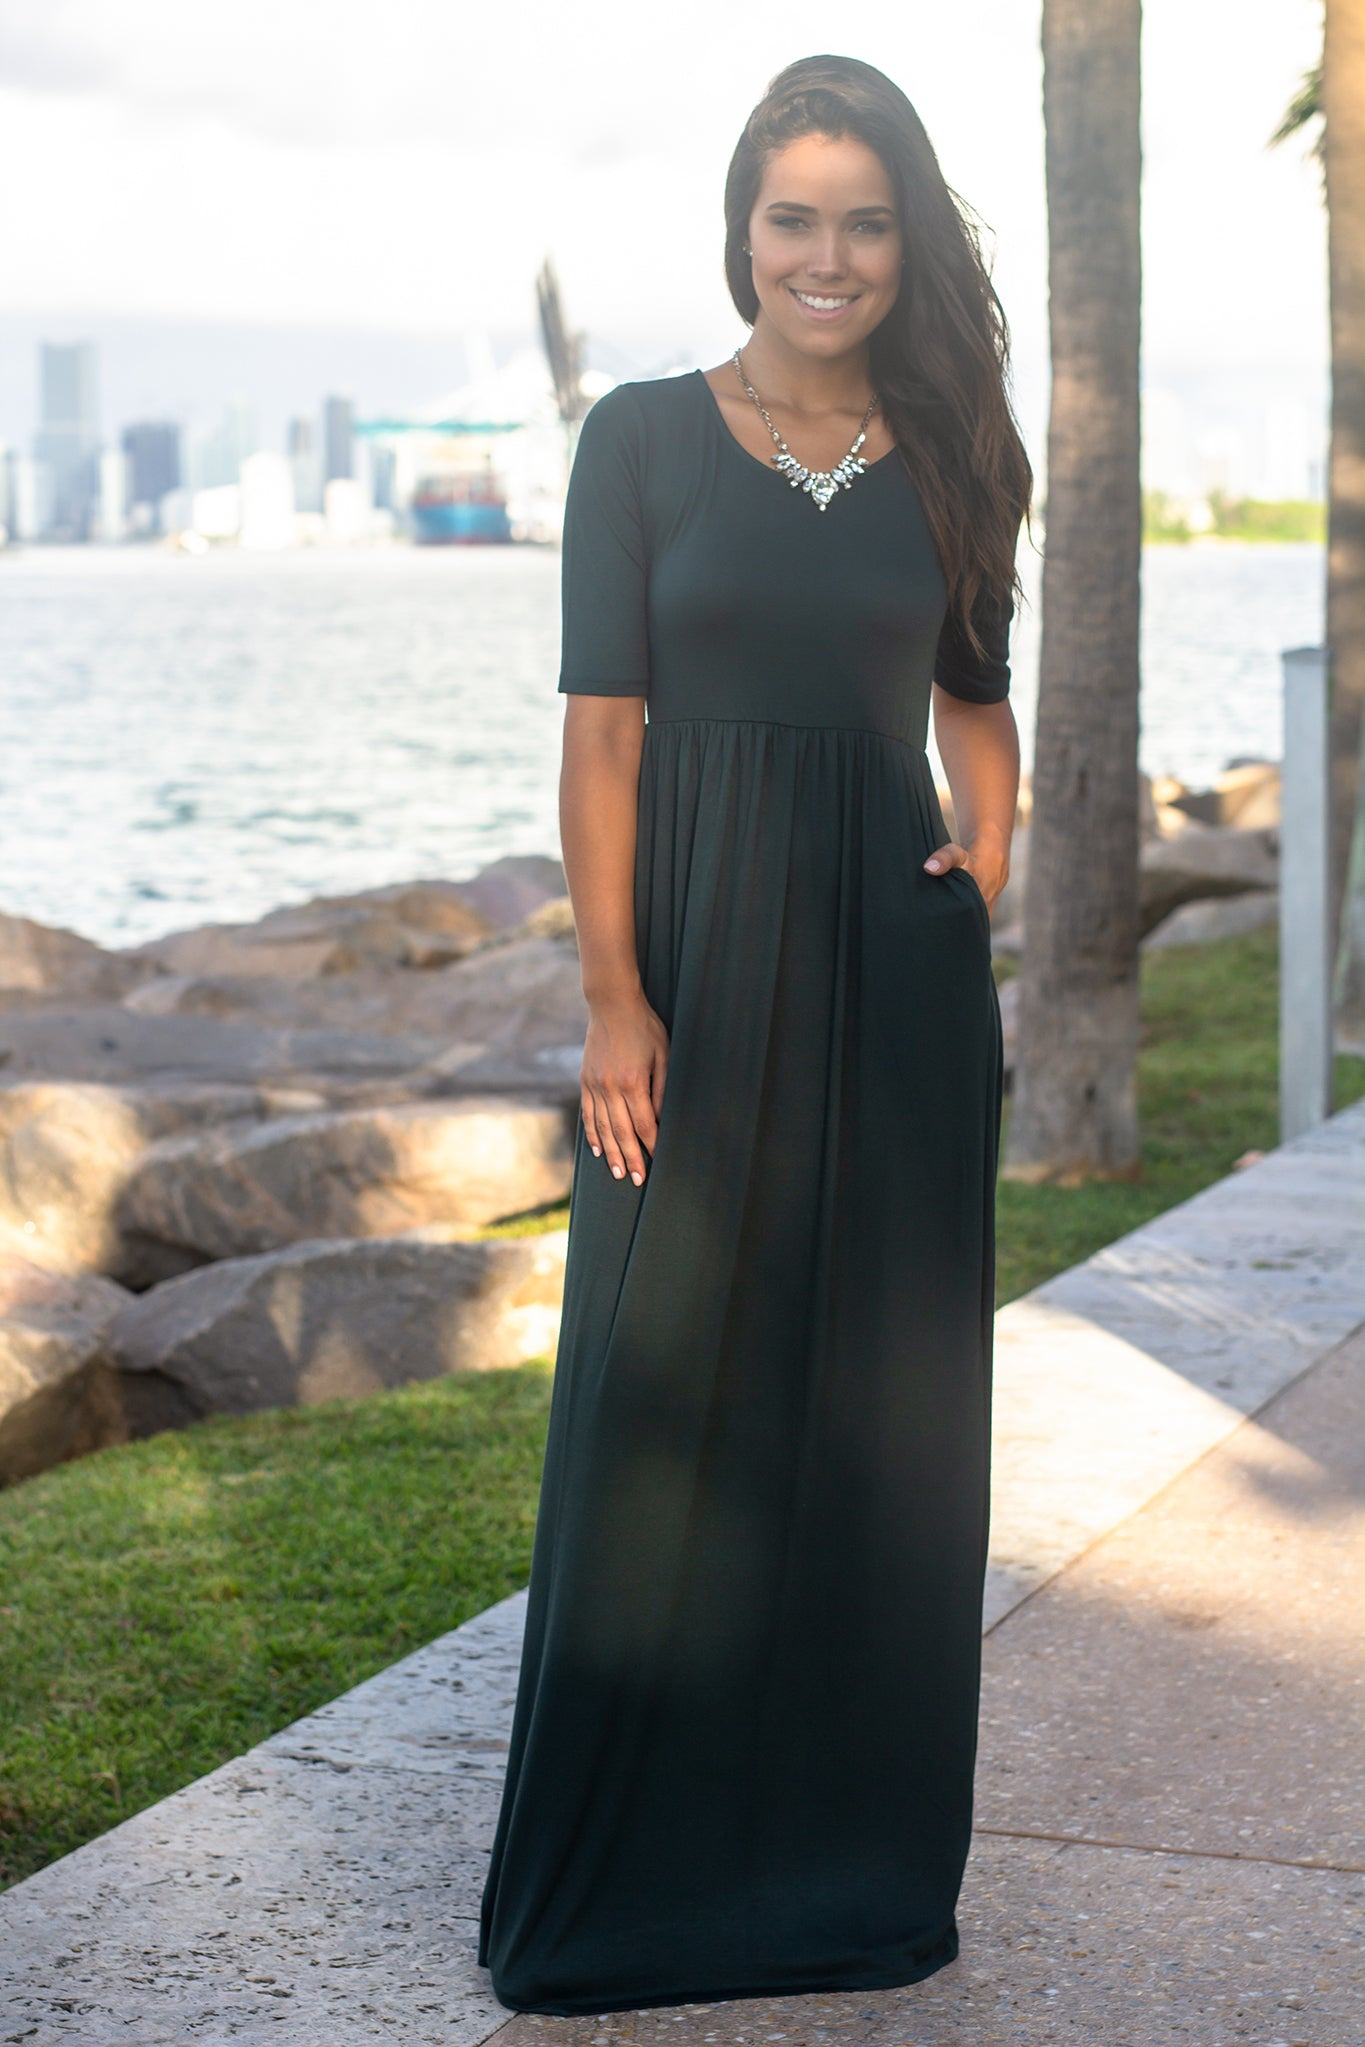 Hunter Green 1/2 Sleeve Maxi Dress with Pockets